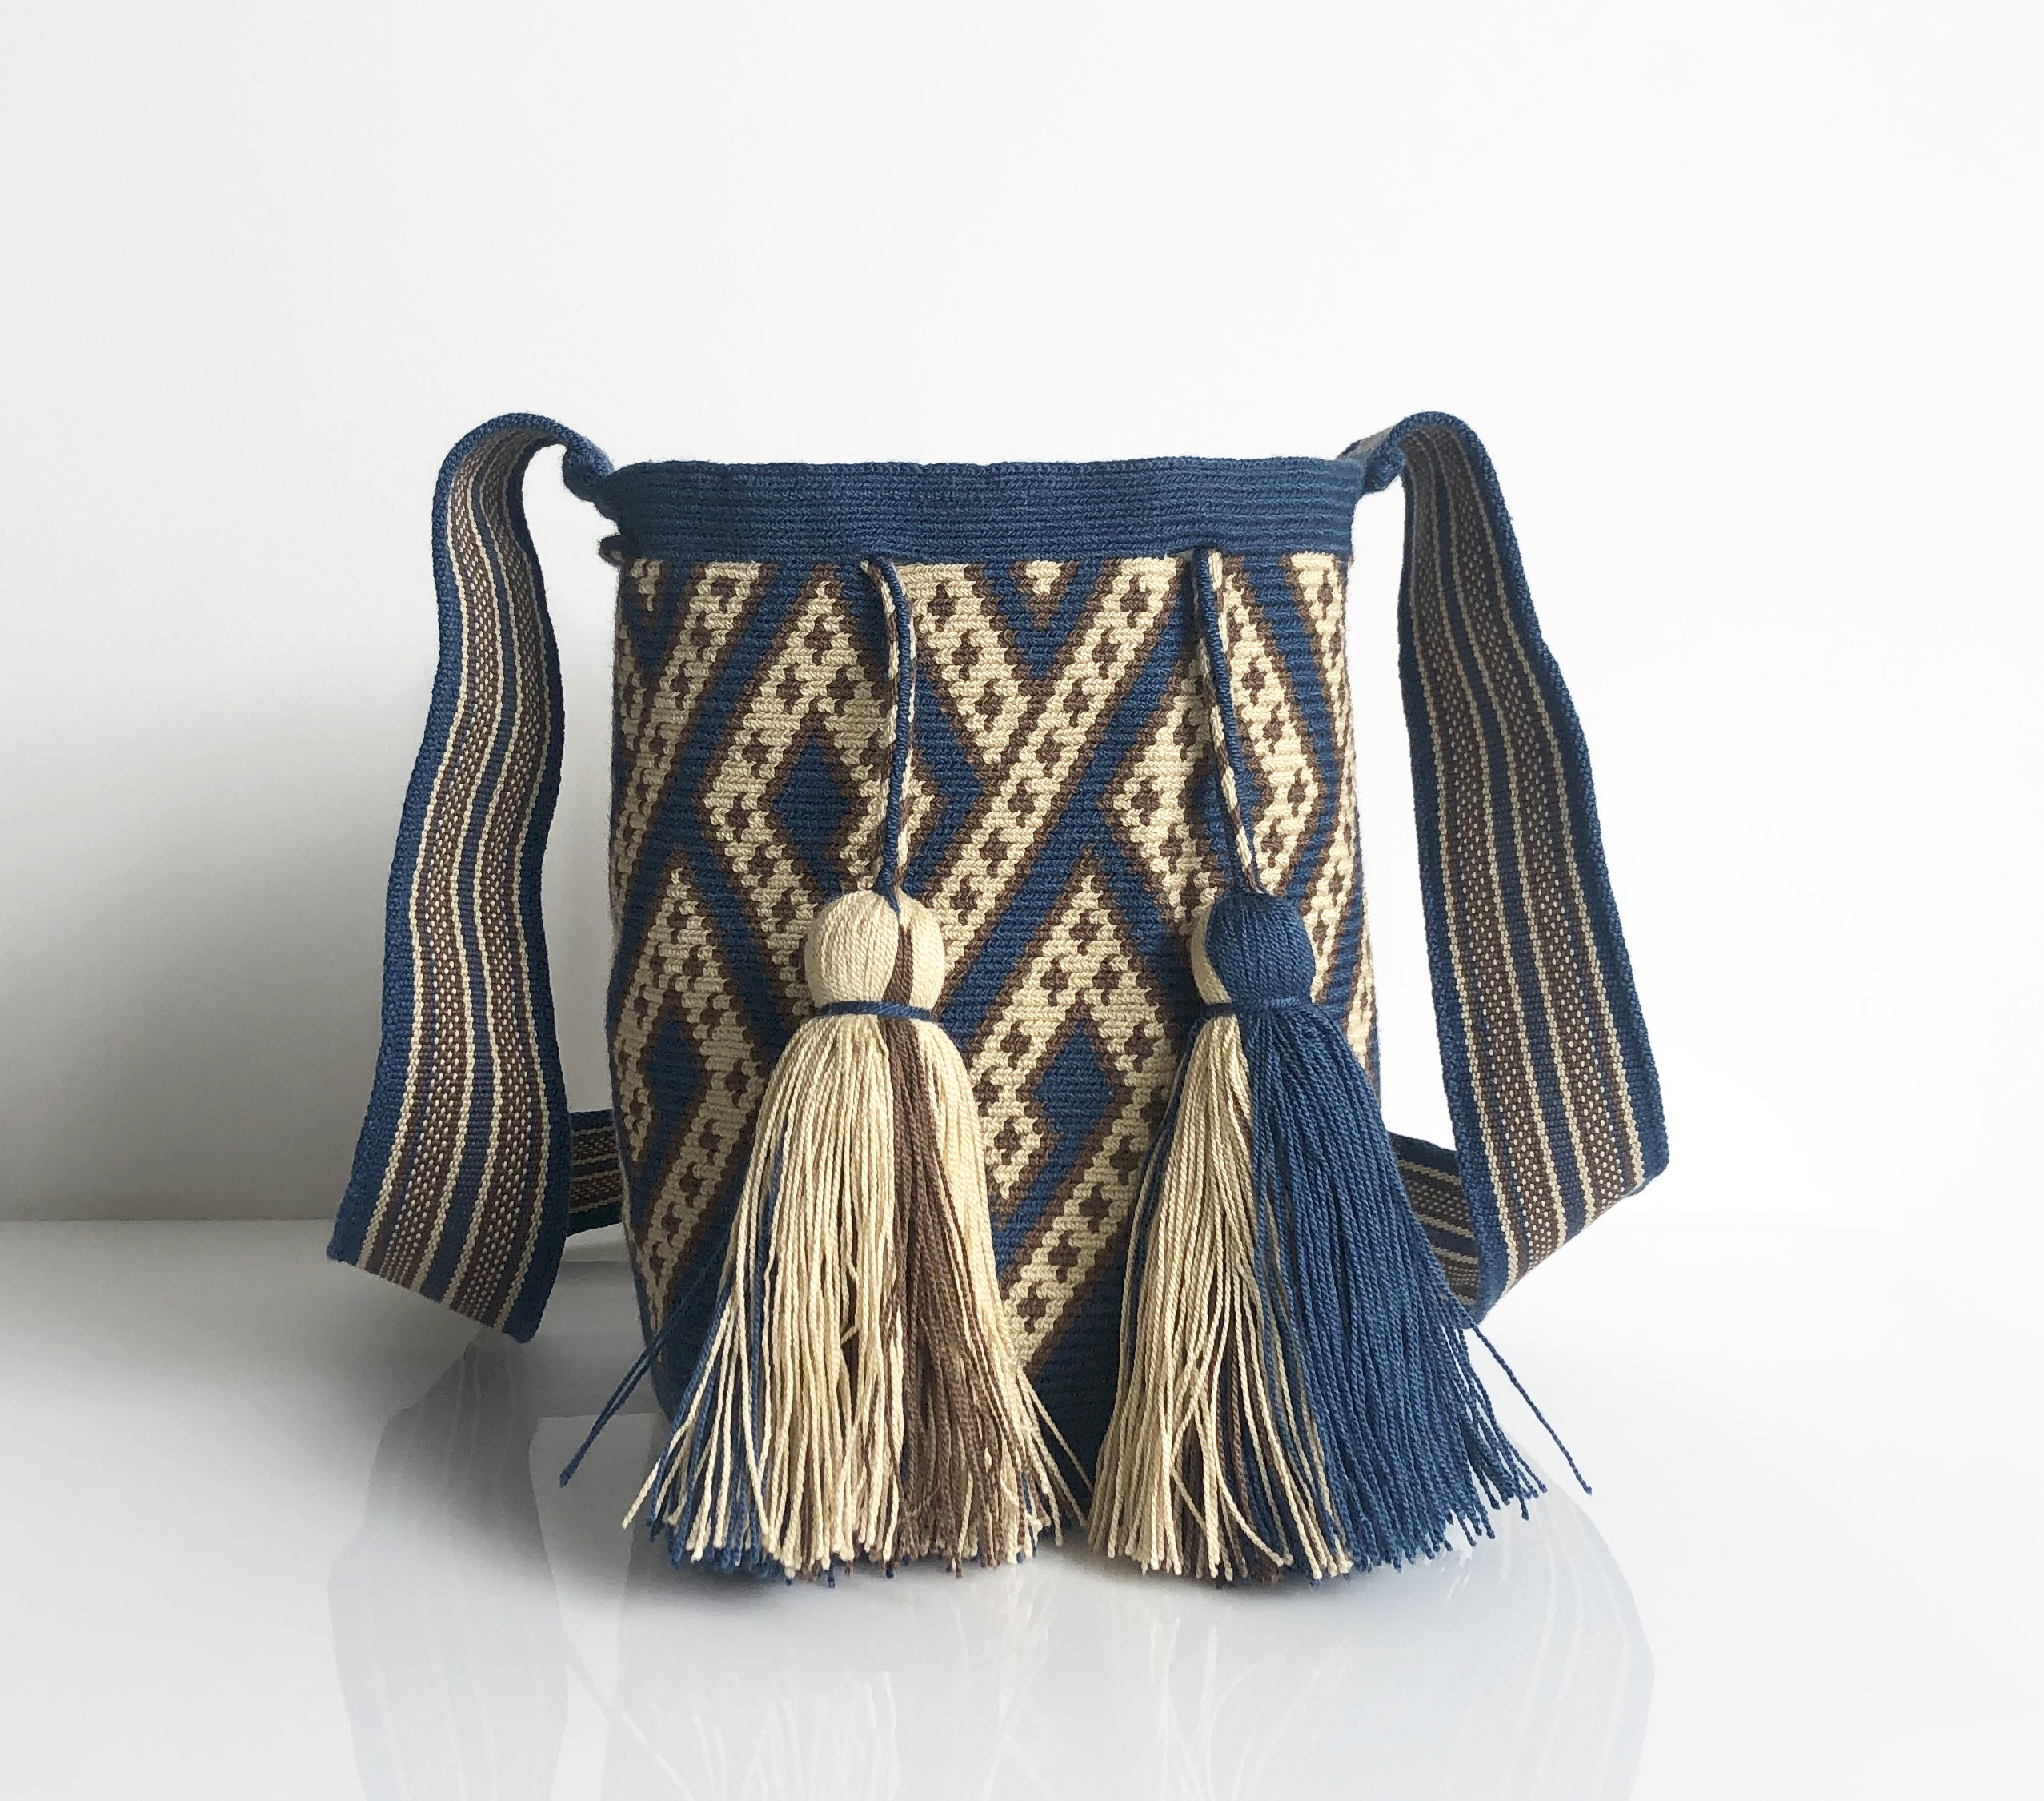 ワユーバッグ(Wayuu bag) Exclusive line Mサイズ